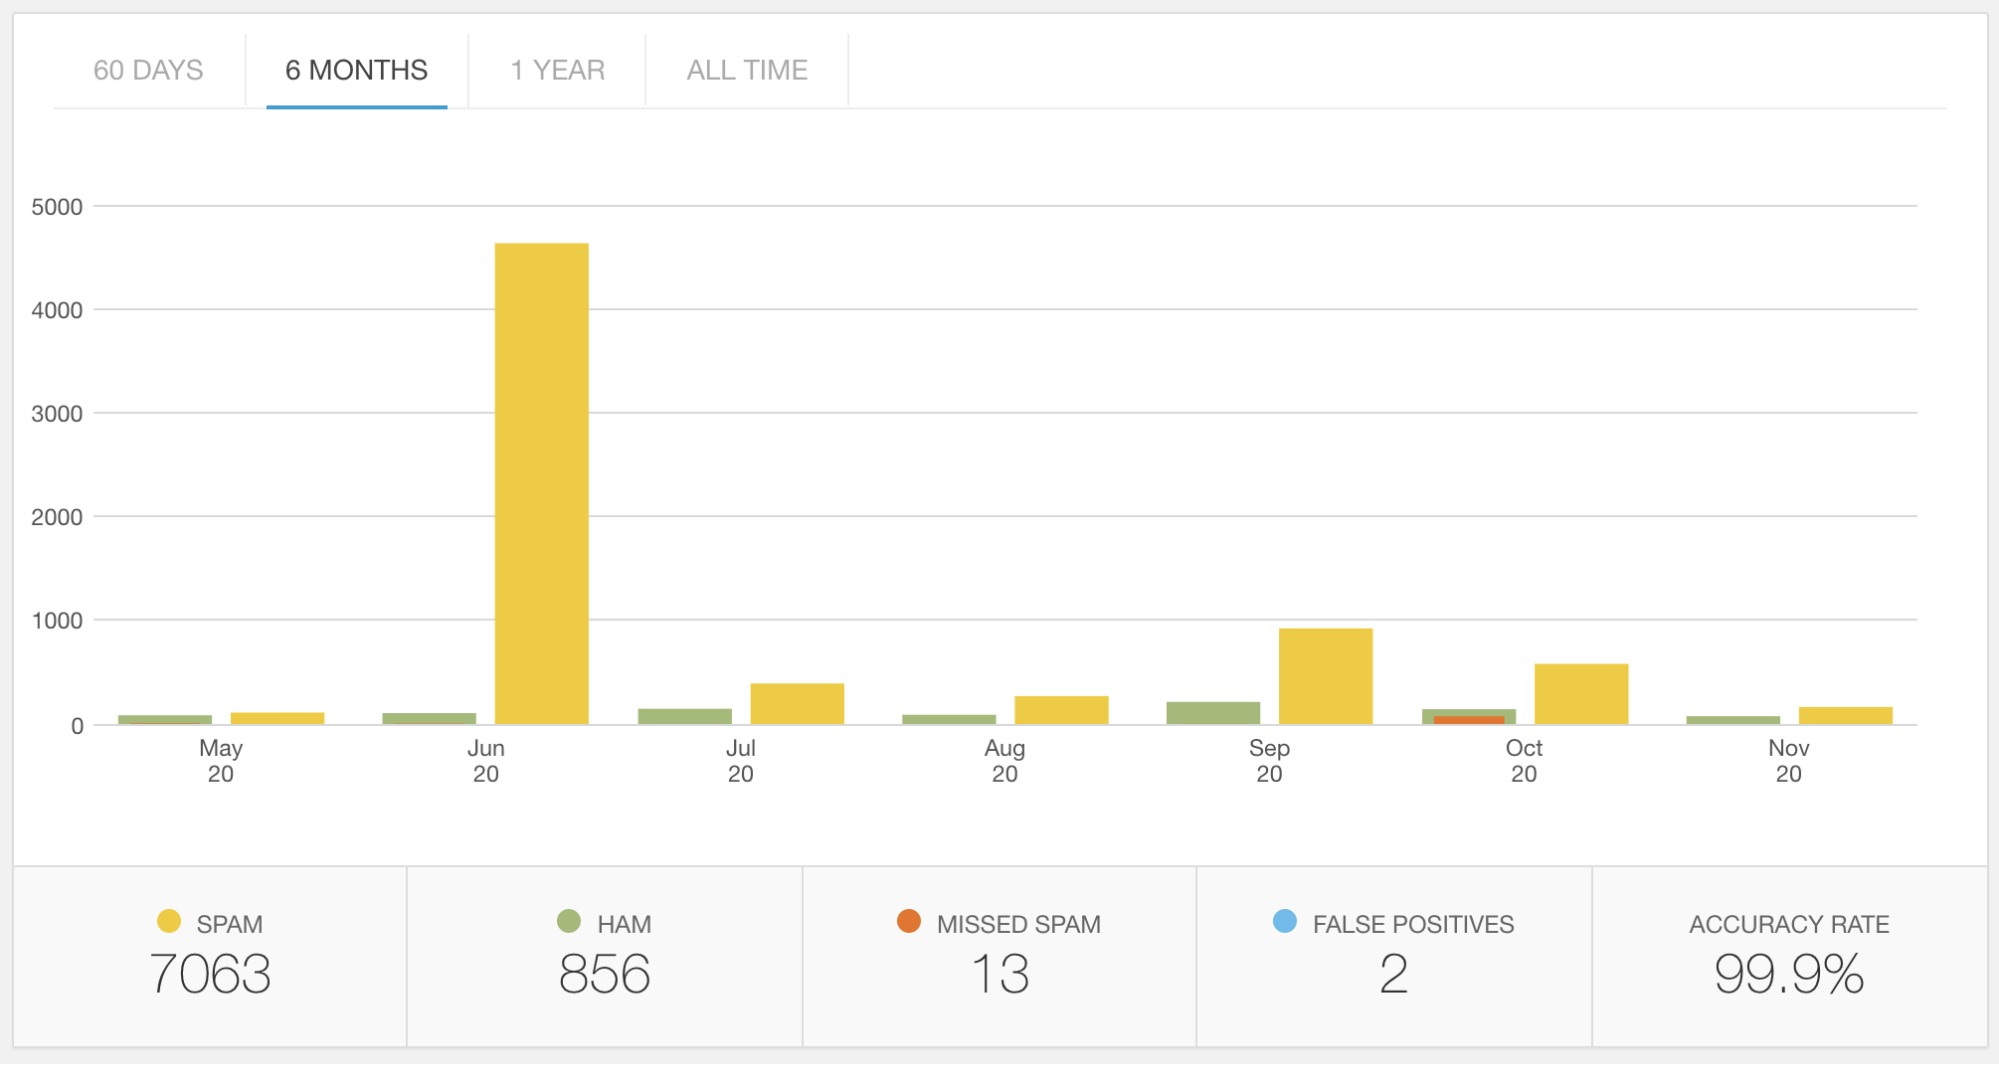 graph showing spam comments over time